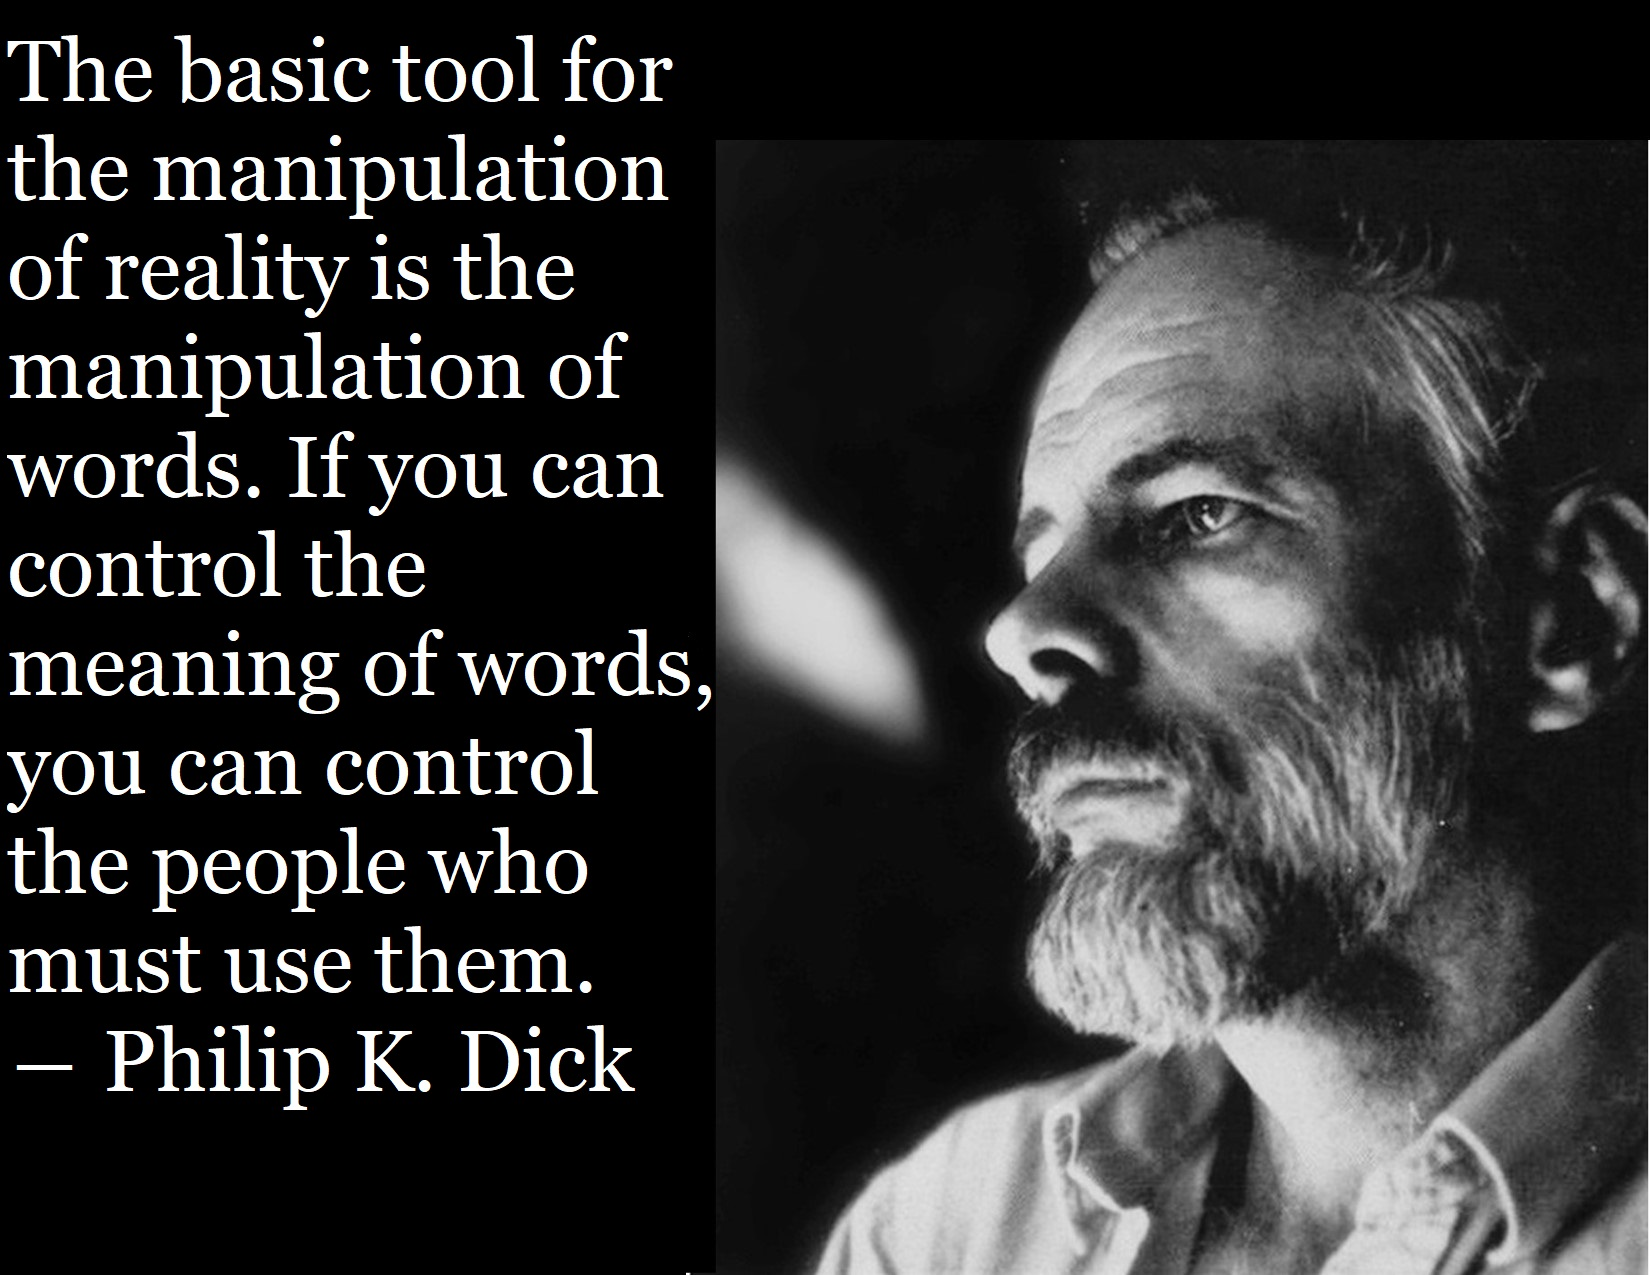 The basic tool for the manipulation of reality is the manipulation of words. If you can control the w meaning of words, you can control the people who must use them. — Philip K. Dick https://inspirational.ly